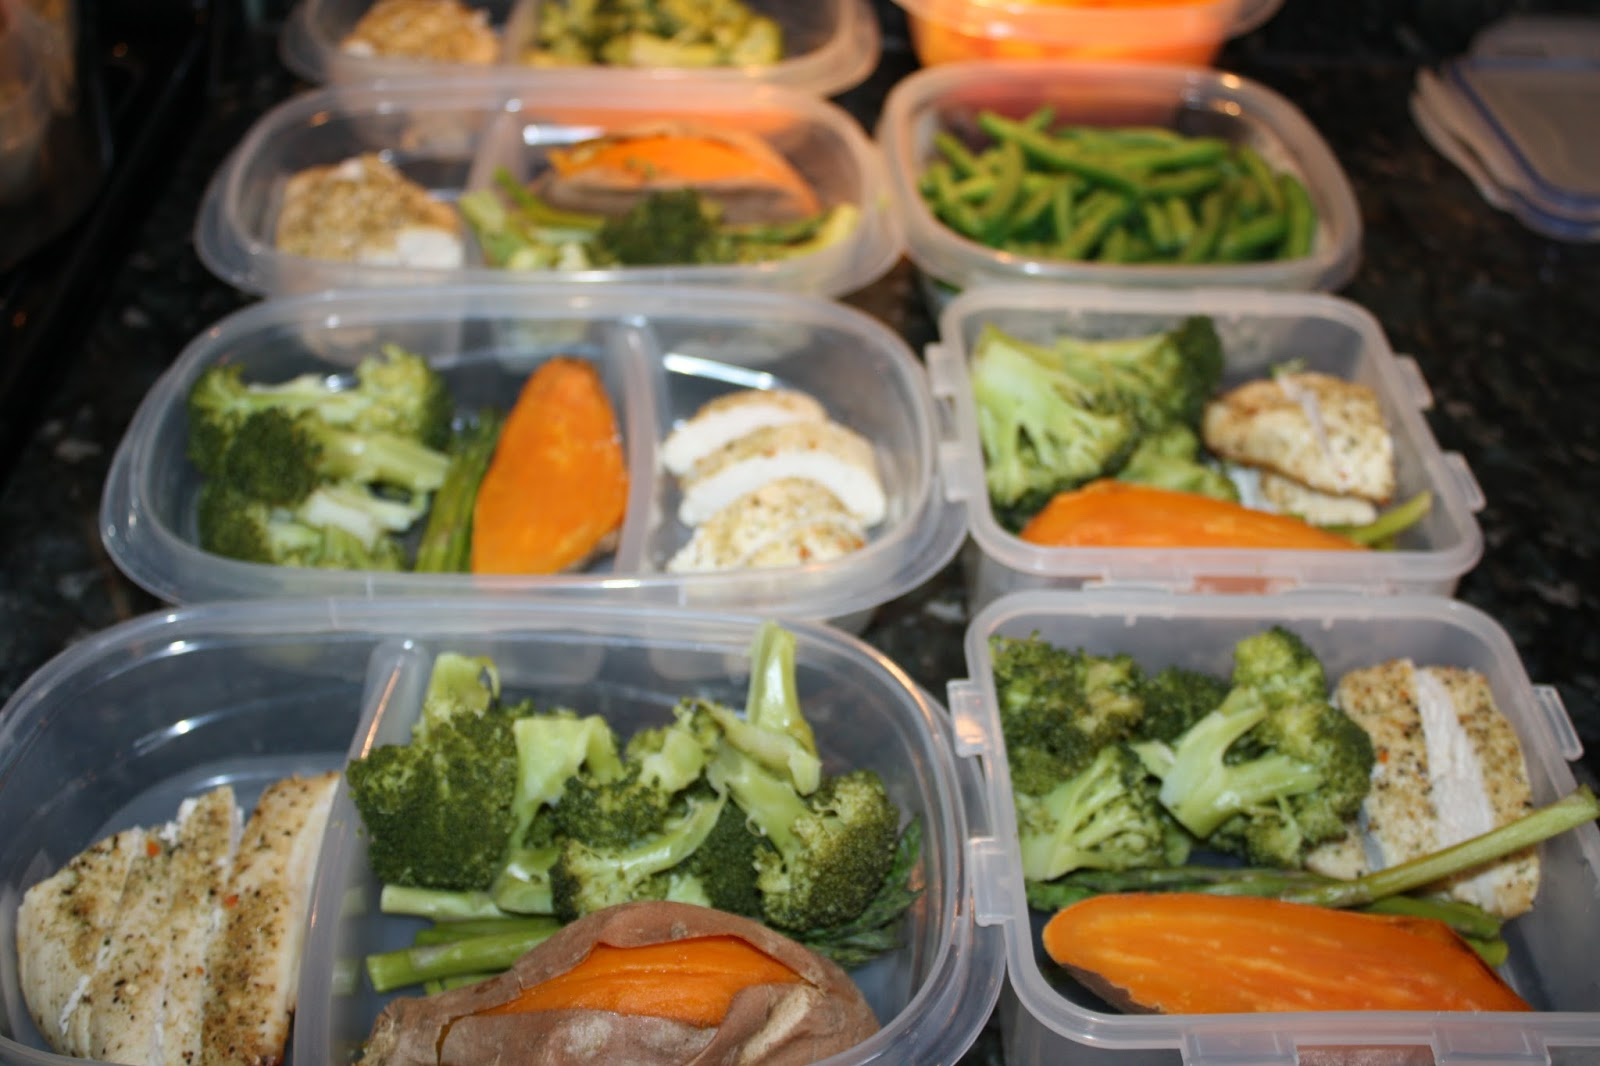 Fit amp; Healthy Mommy: Batch Meal Prep  Clean Eating